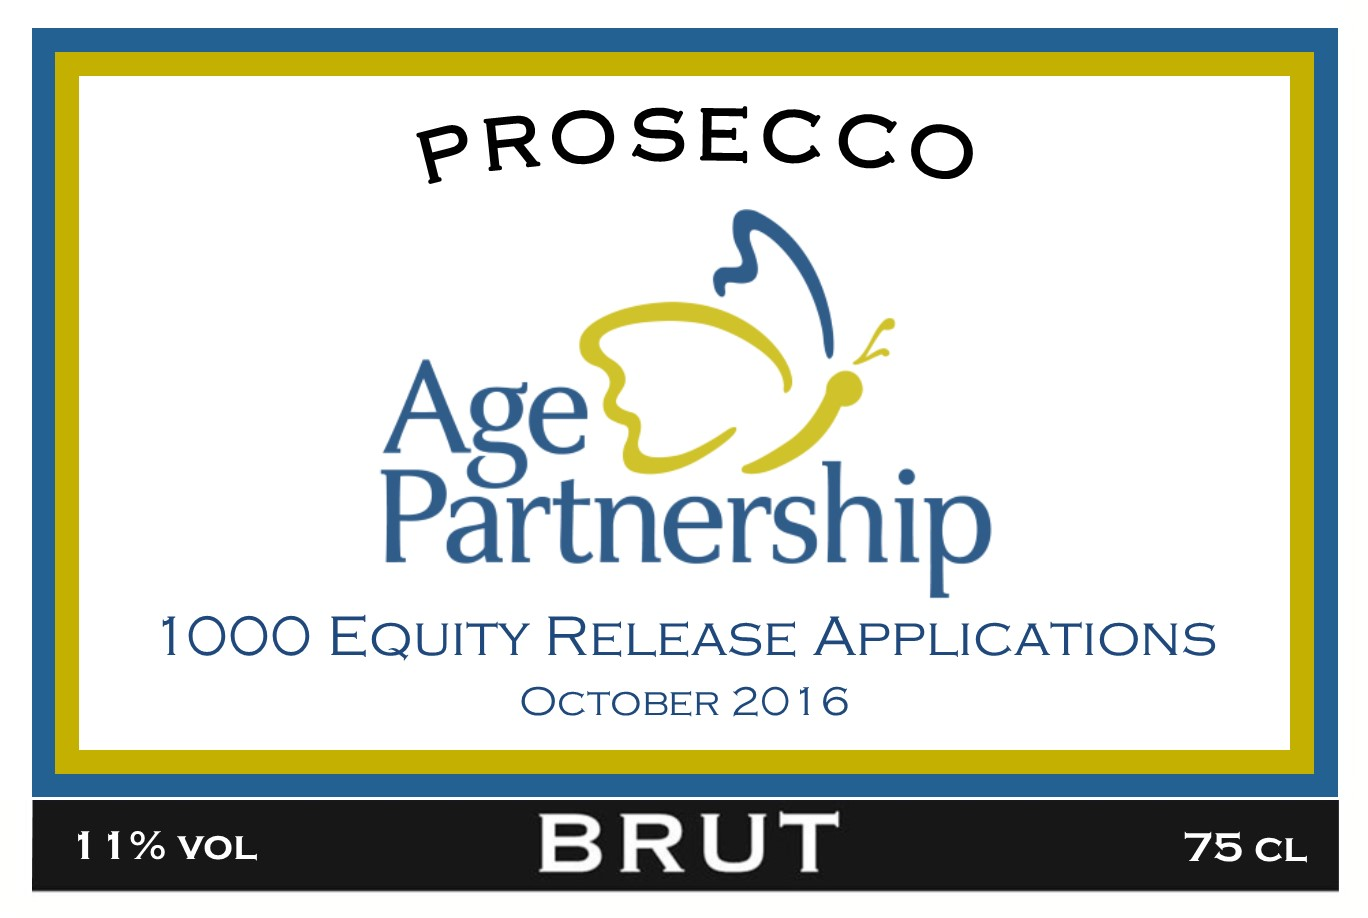 Age Partnership Branded Prosecco